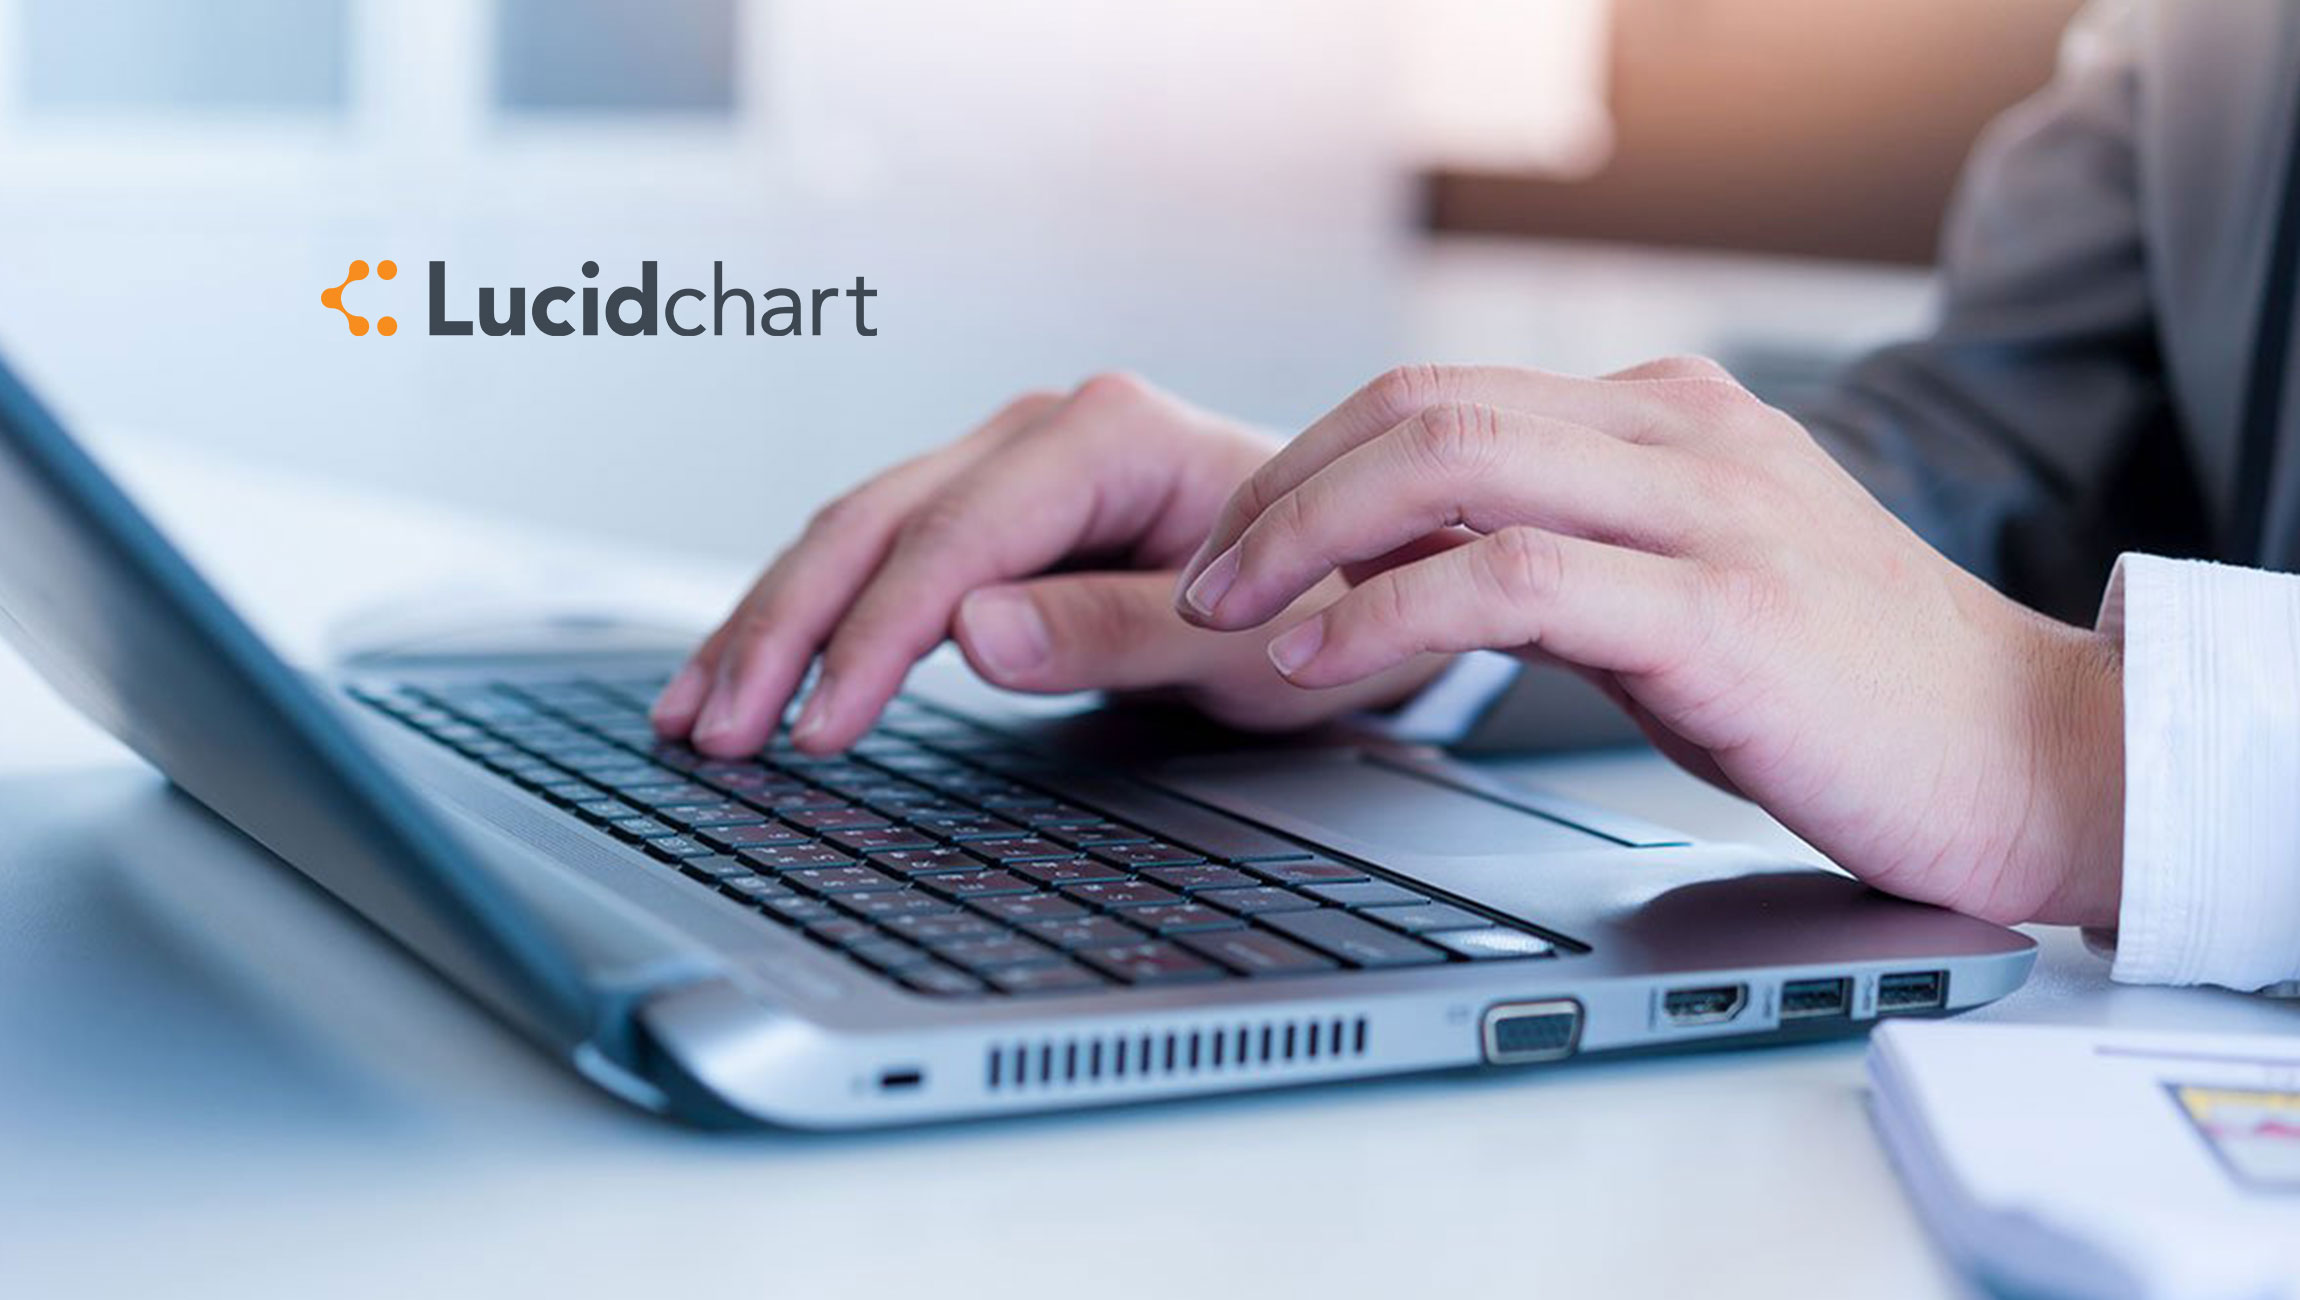 Lucidchart Closes $72 Million Funding Round from Meritech Capital, ICONIQ Capital and Spectrum Equity